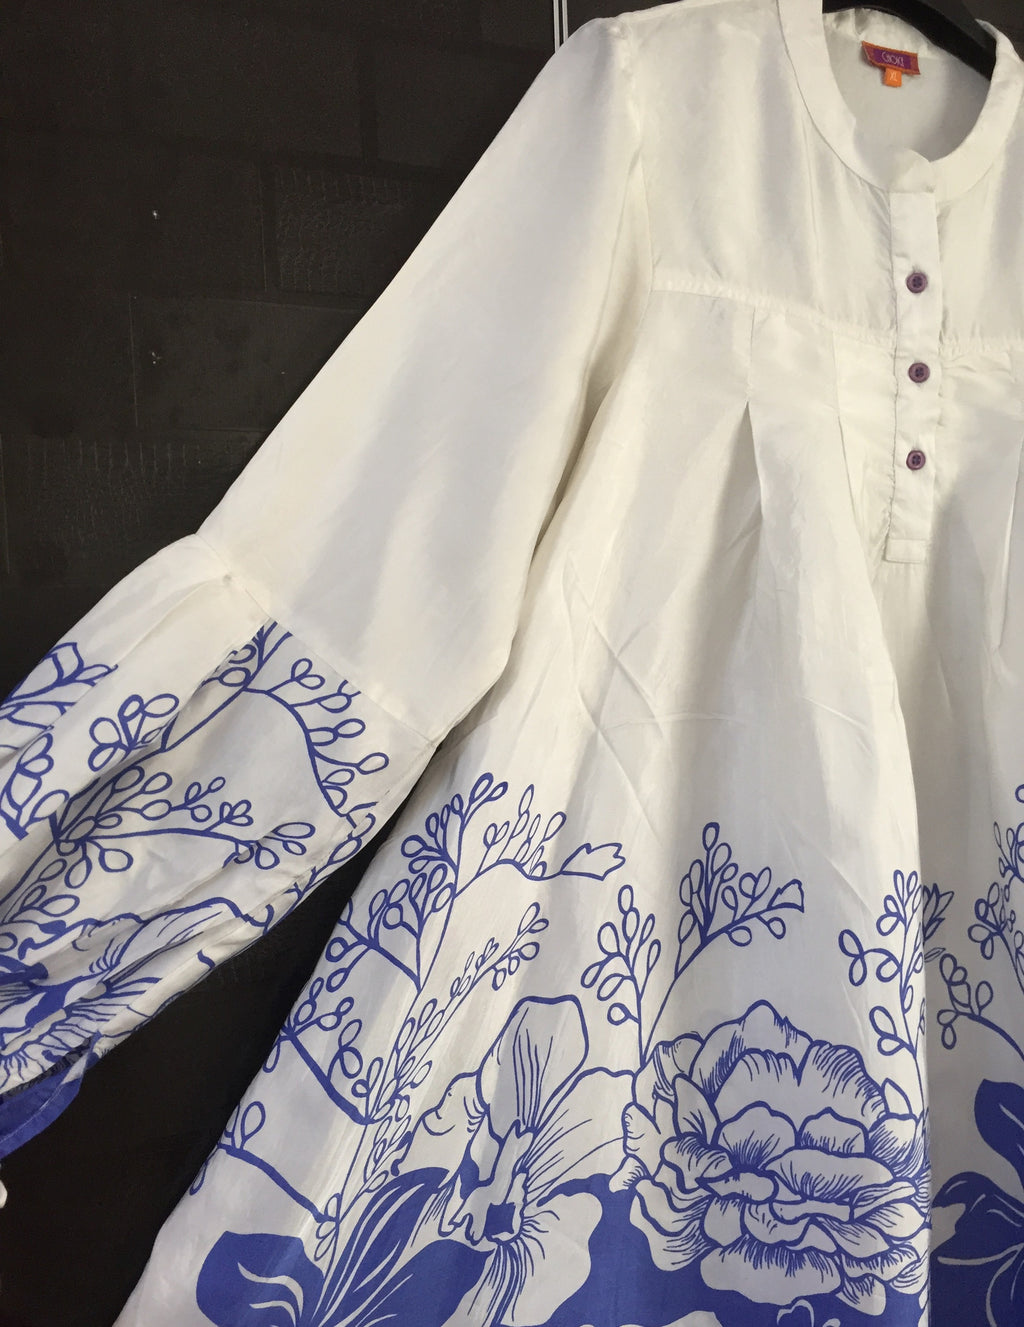 Little Shimmer - Blue and White Floral Dress with Fun Sleeves